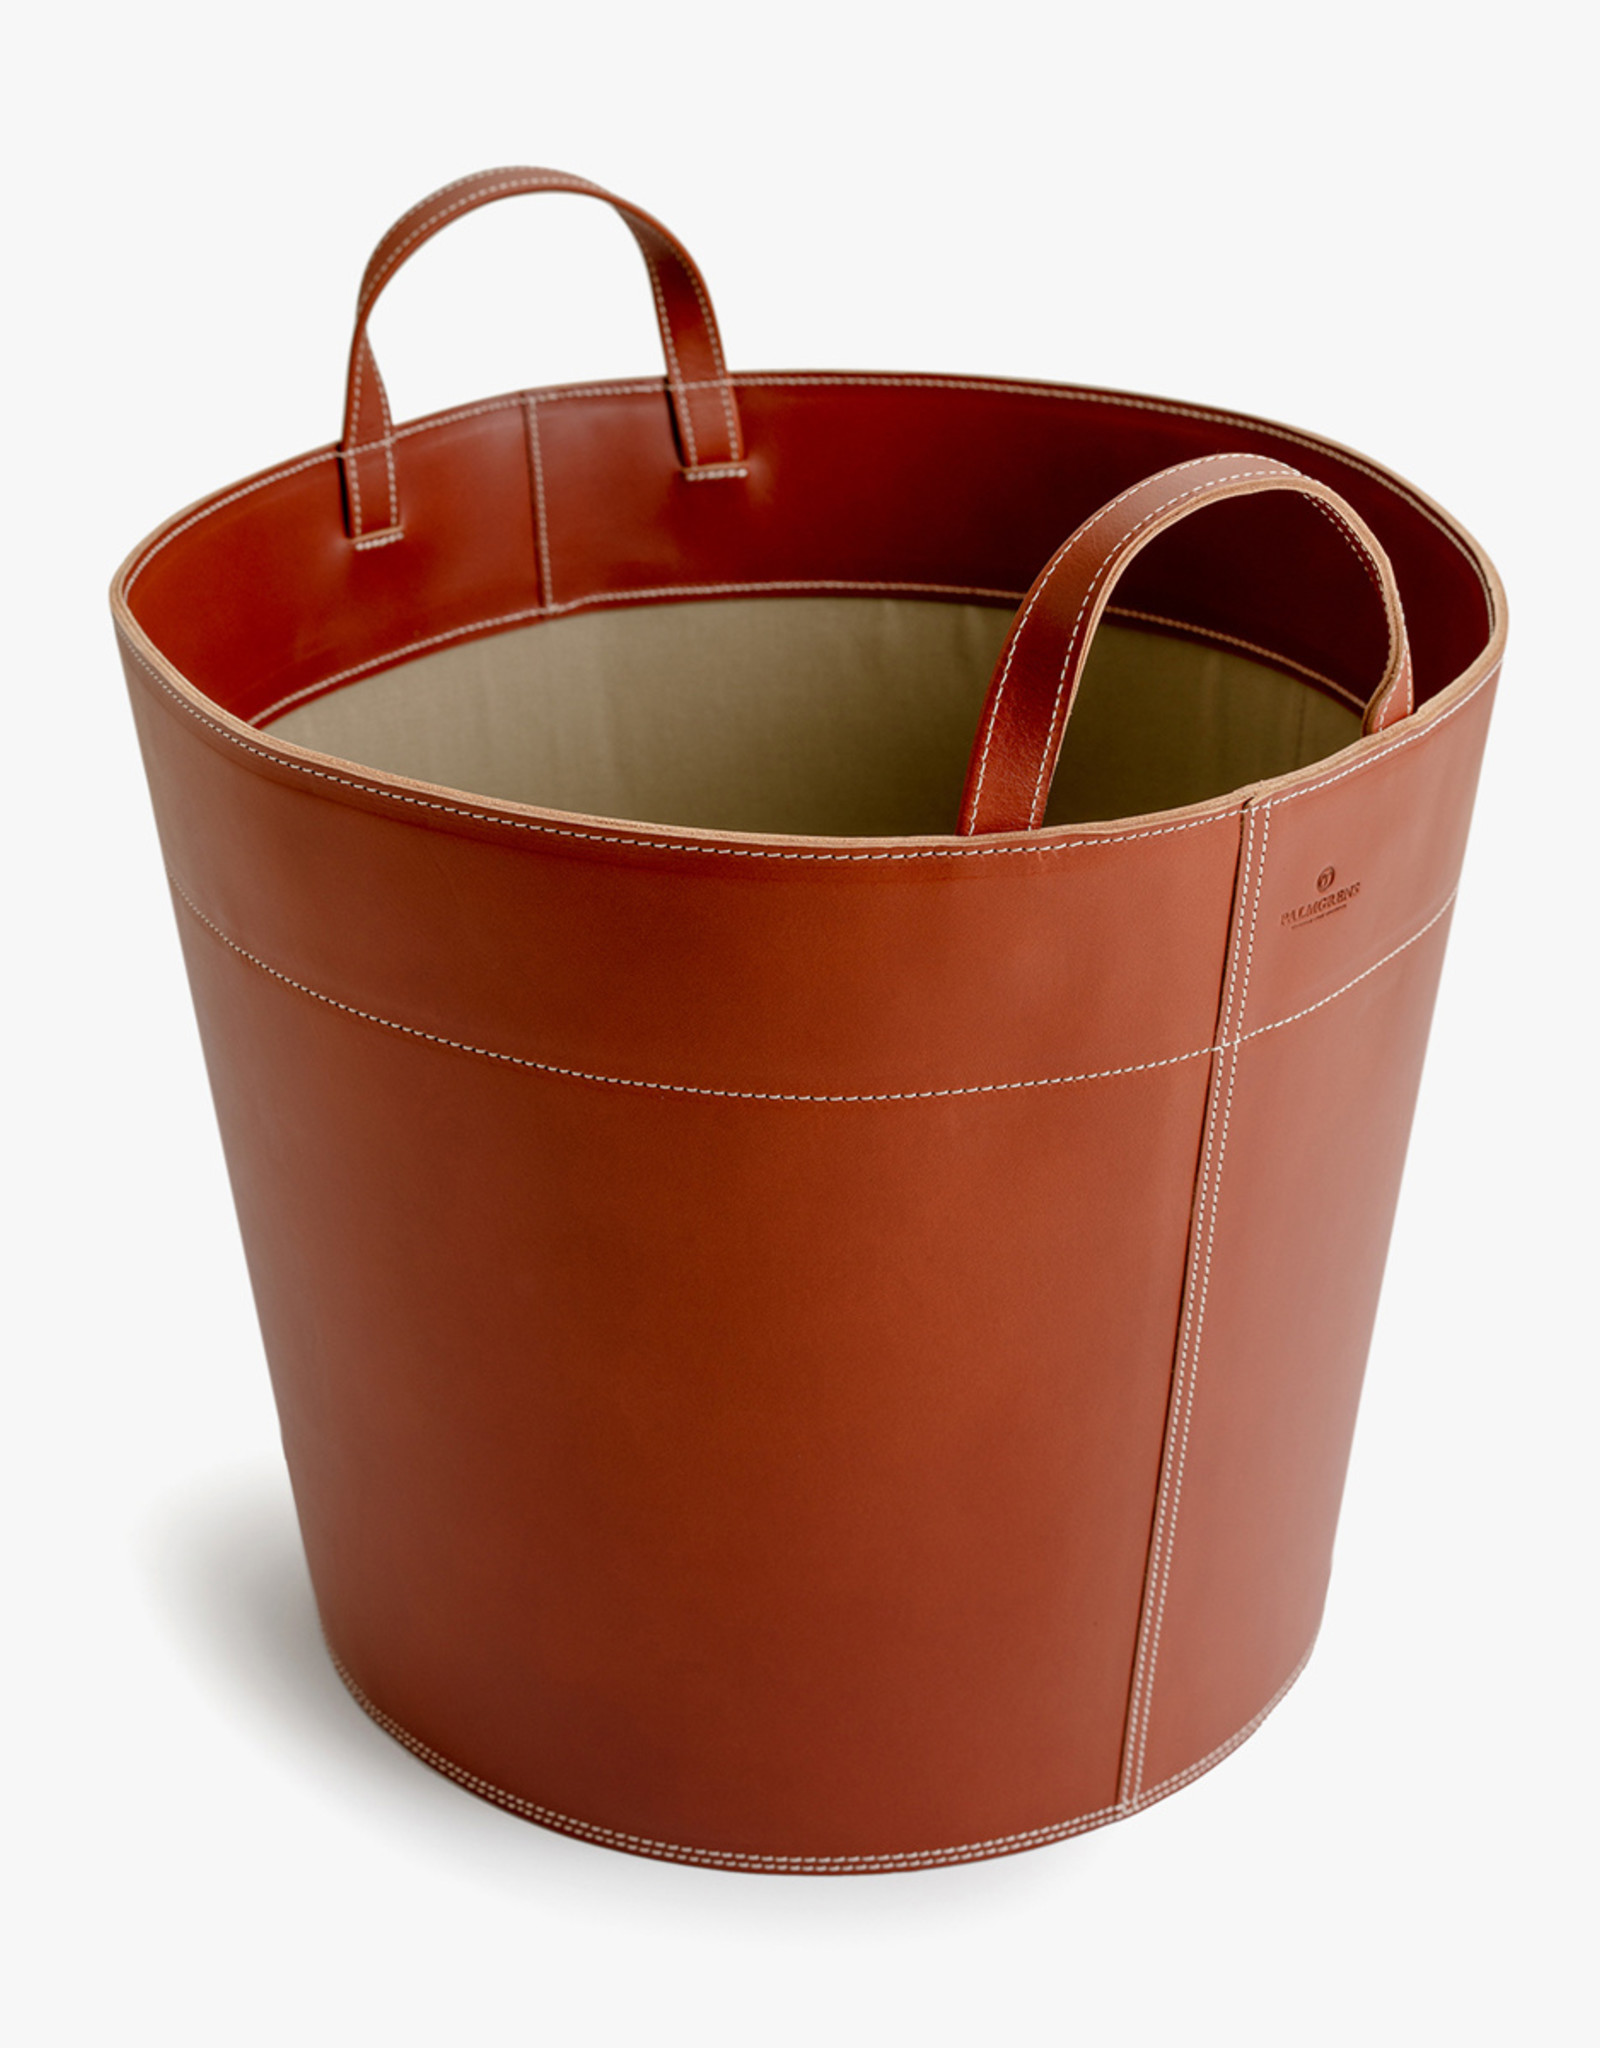 Basket with handles by Palmgrens | Cognac leather